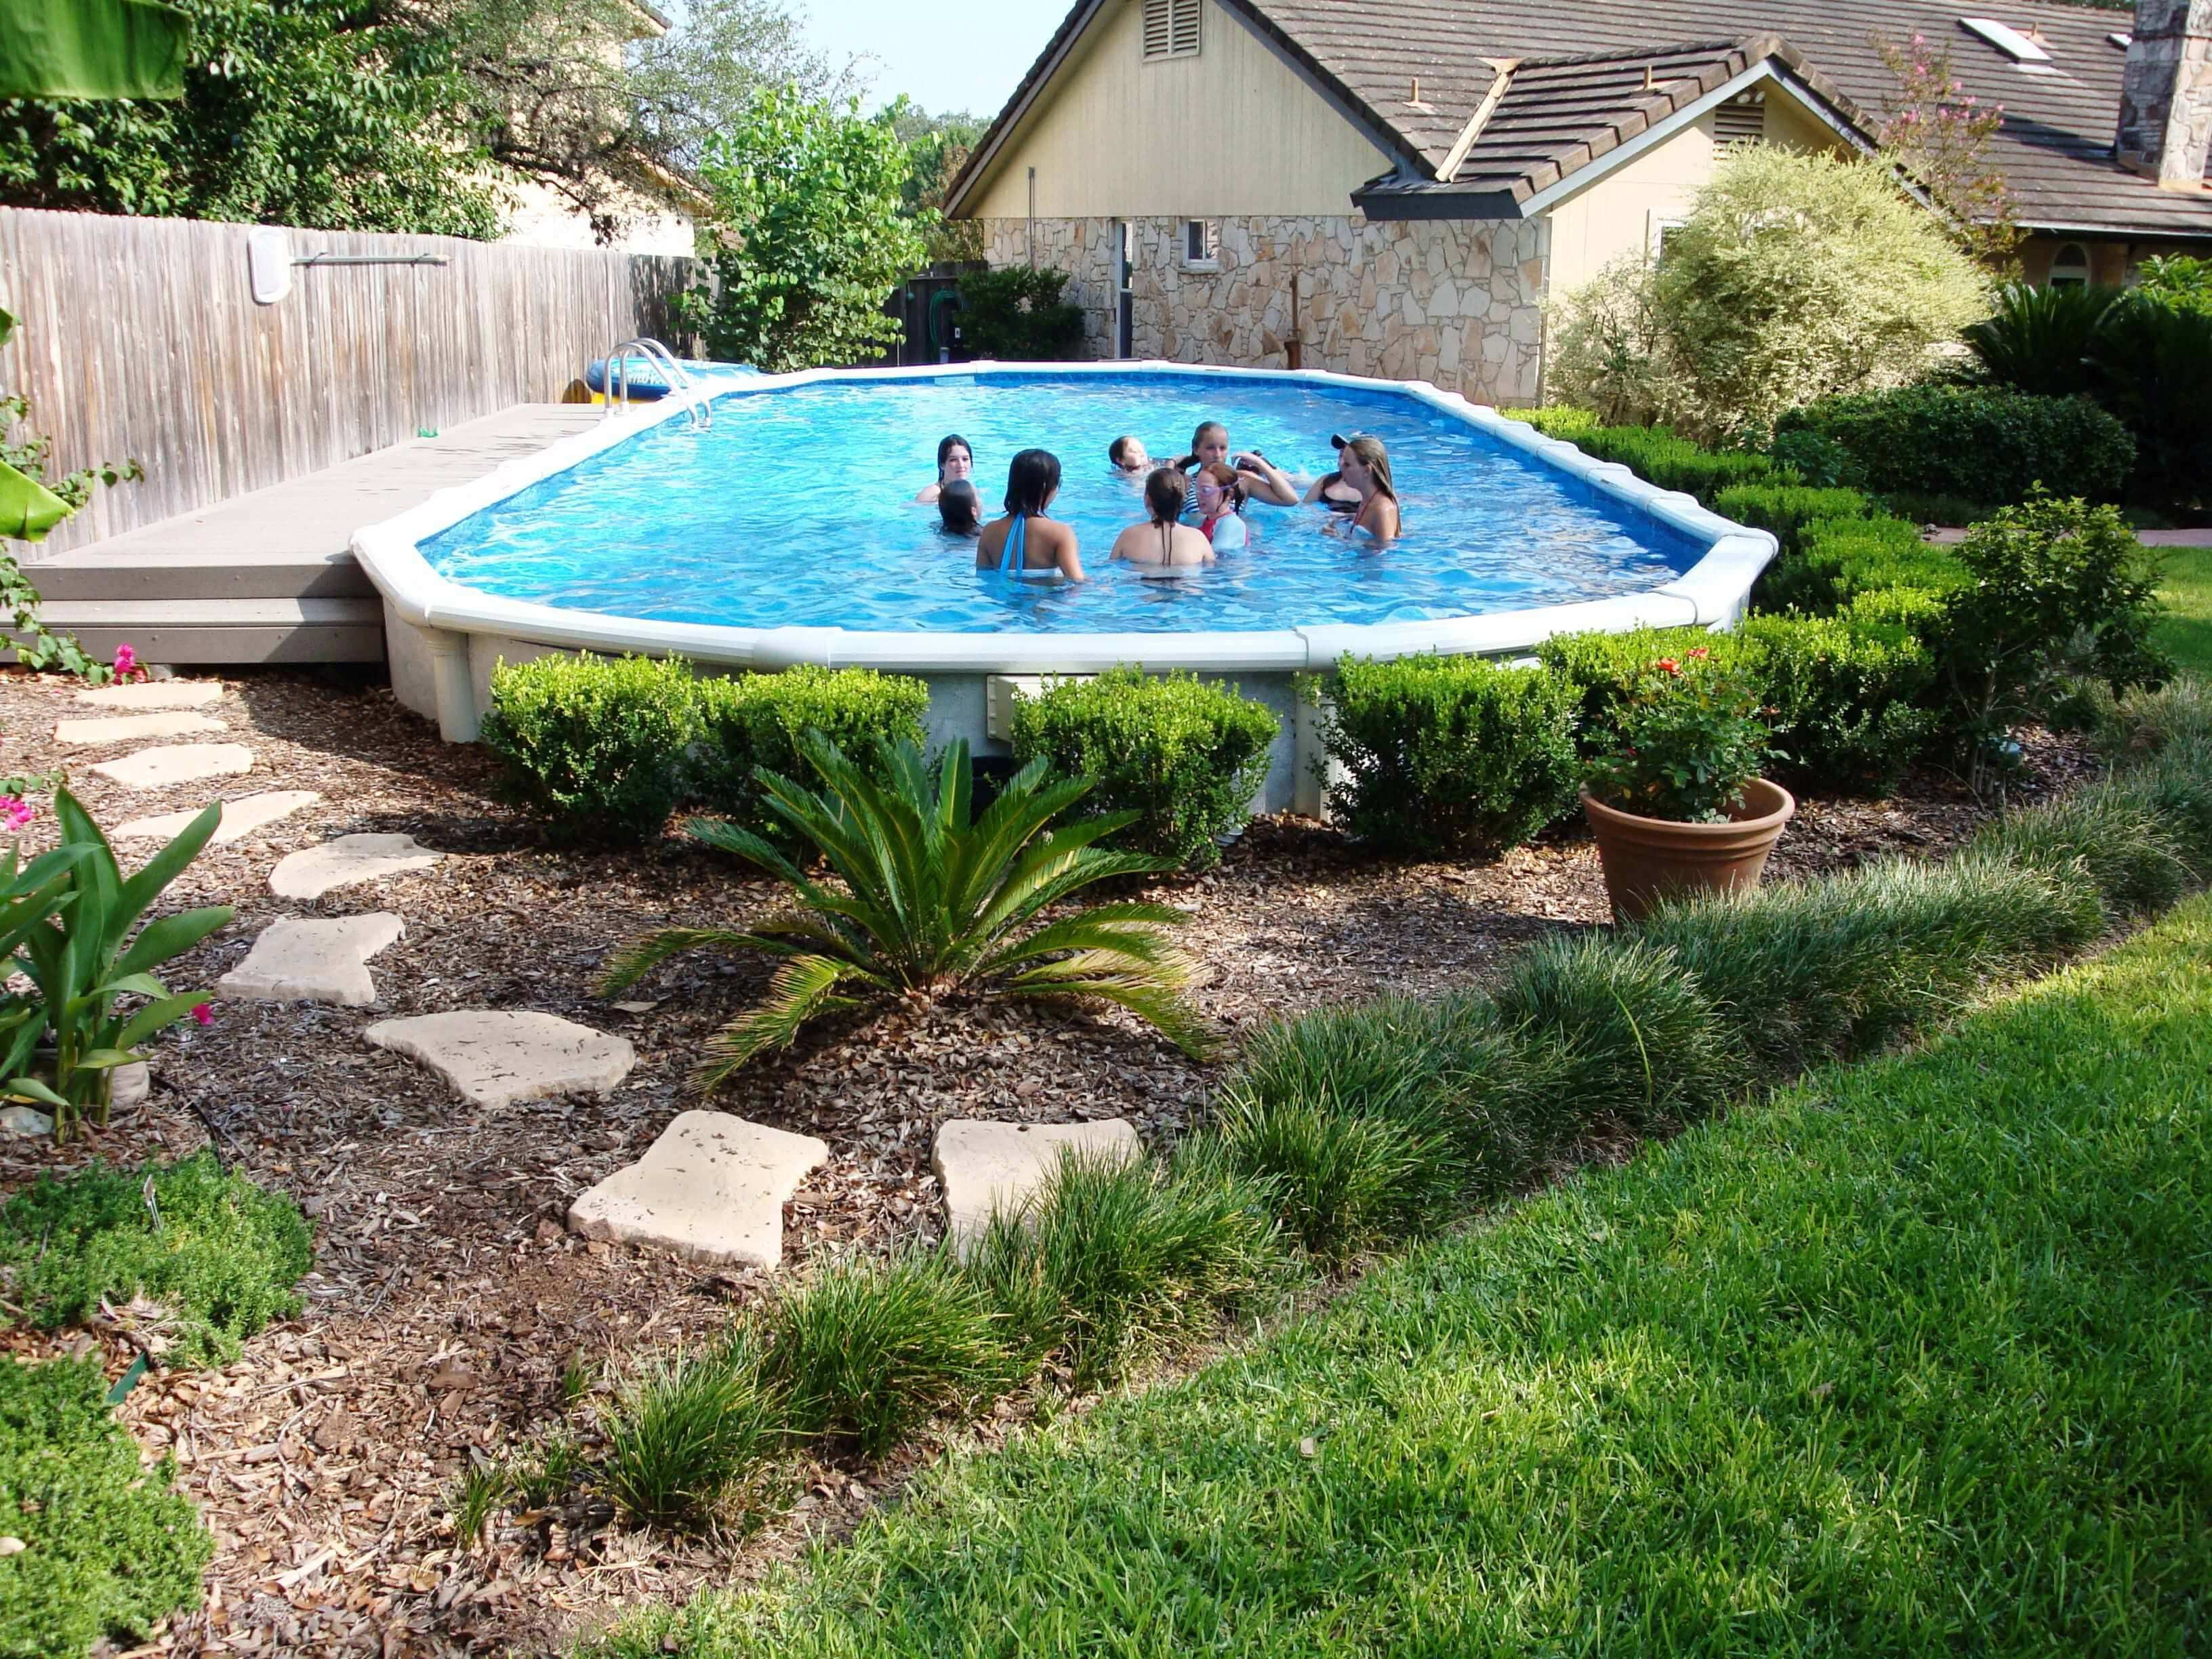 Best ideas about DIY In Ground Pool Kits . Save or Pin Diy Semi Inground Pool Kits Semi Inground Pools Now.